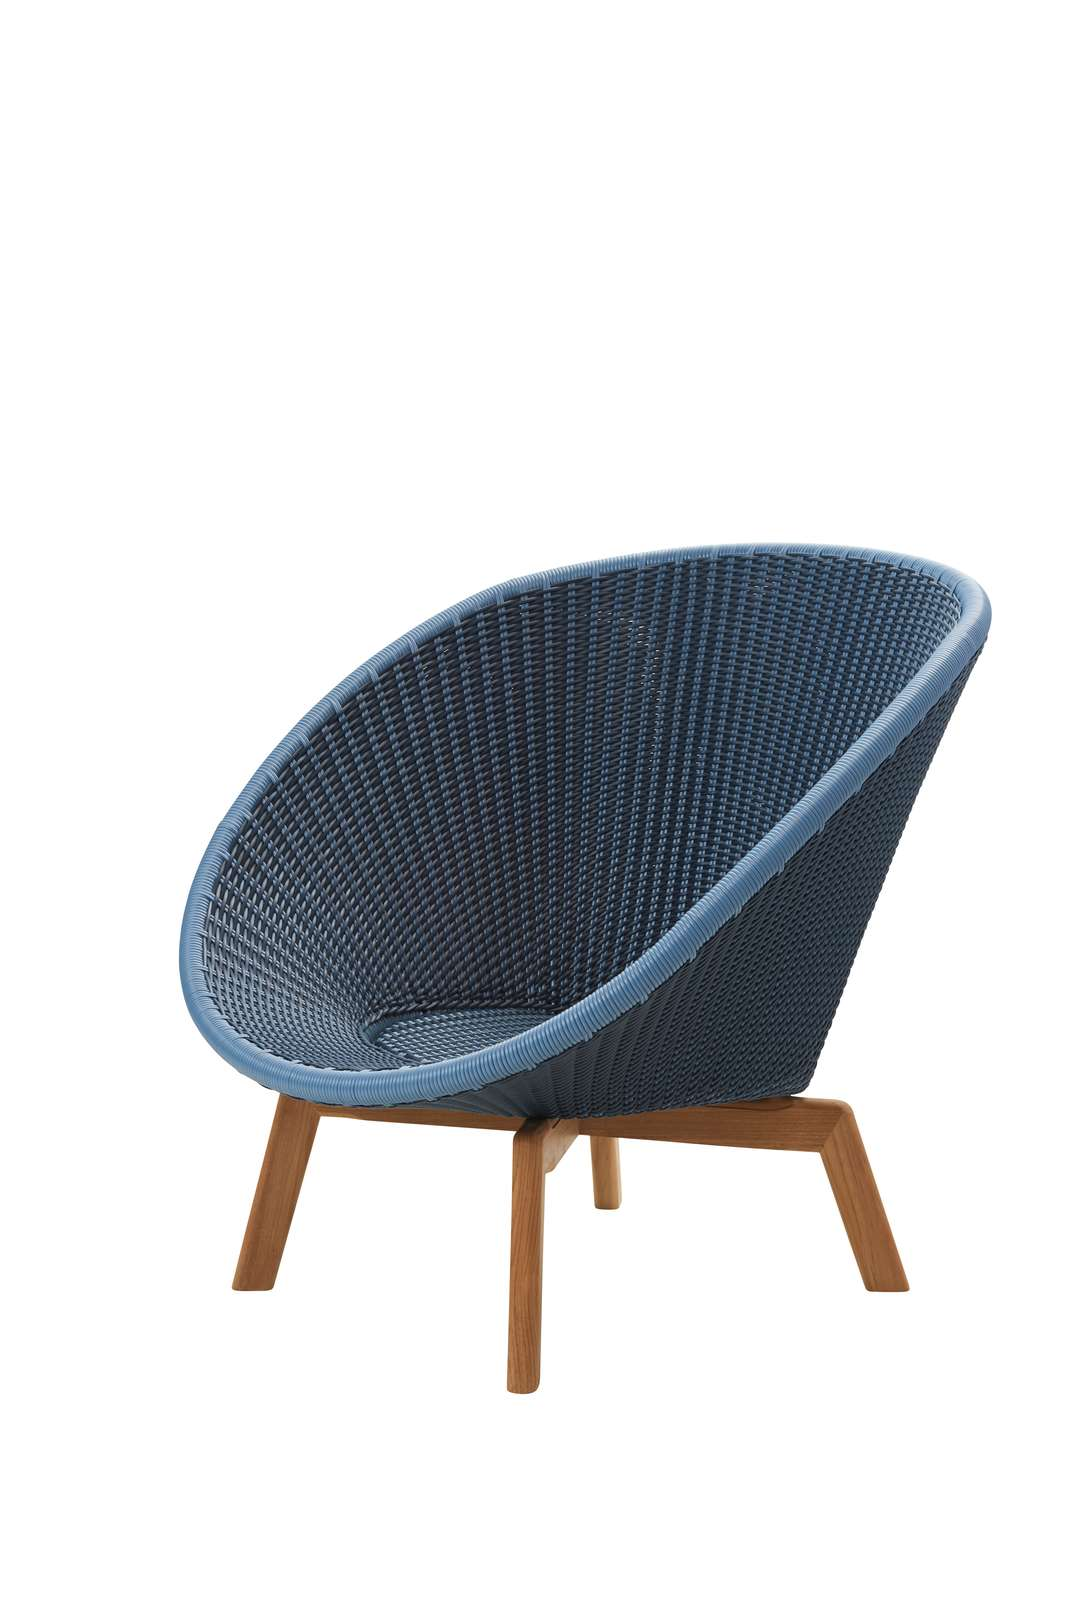 Swell Cane Line Peacock Outdoor Lounge Chair Andrewgaddart Wooden Chair Designs For Living Room Andrewgaddartcom